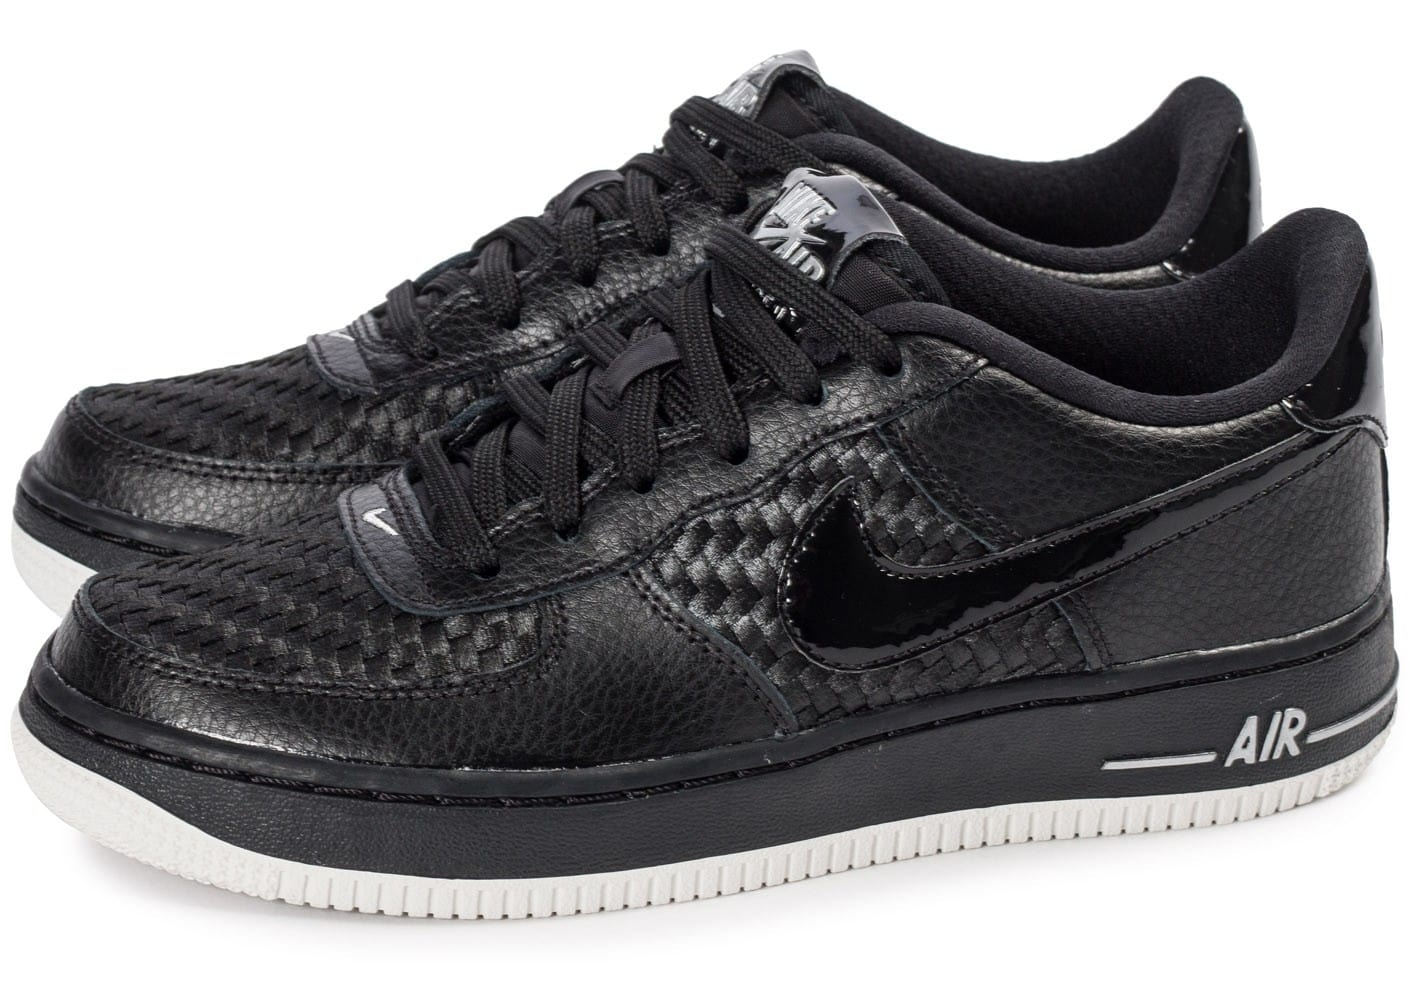 pas mal faa74 3544c Nike Air Force 1 LV8 Low Junior noire - Chaussures Baskets ...